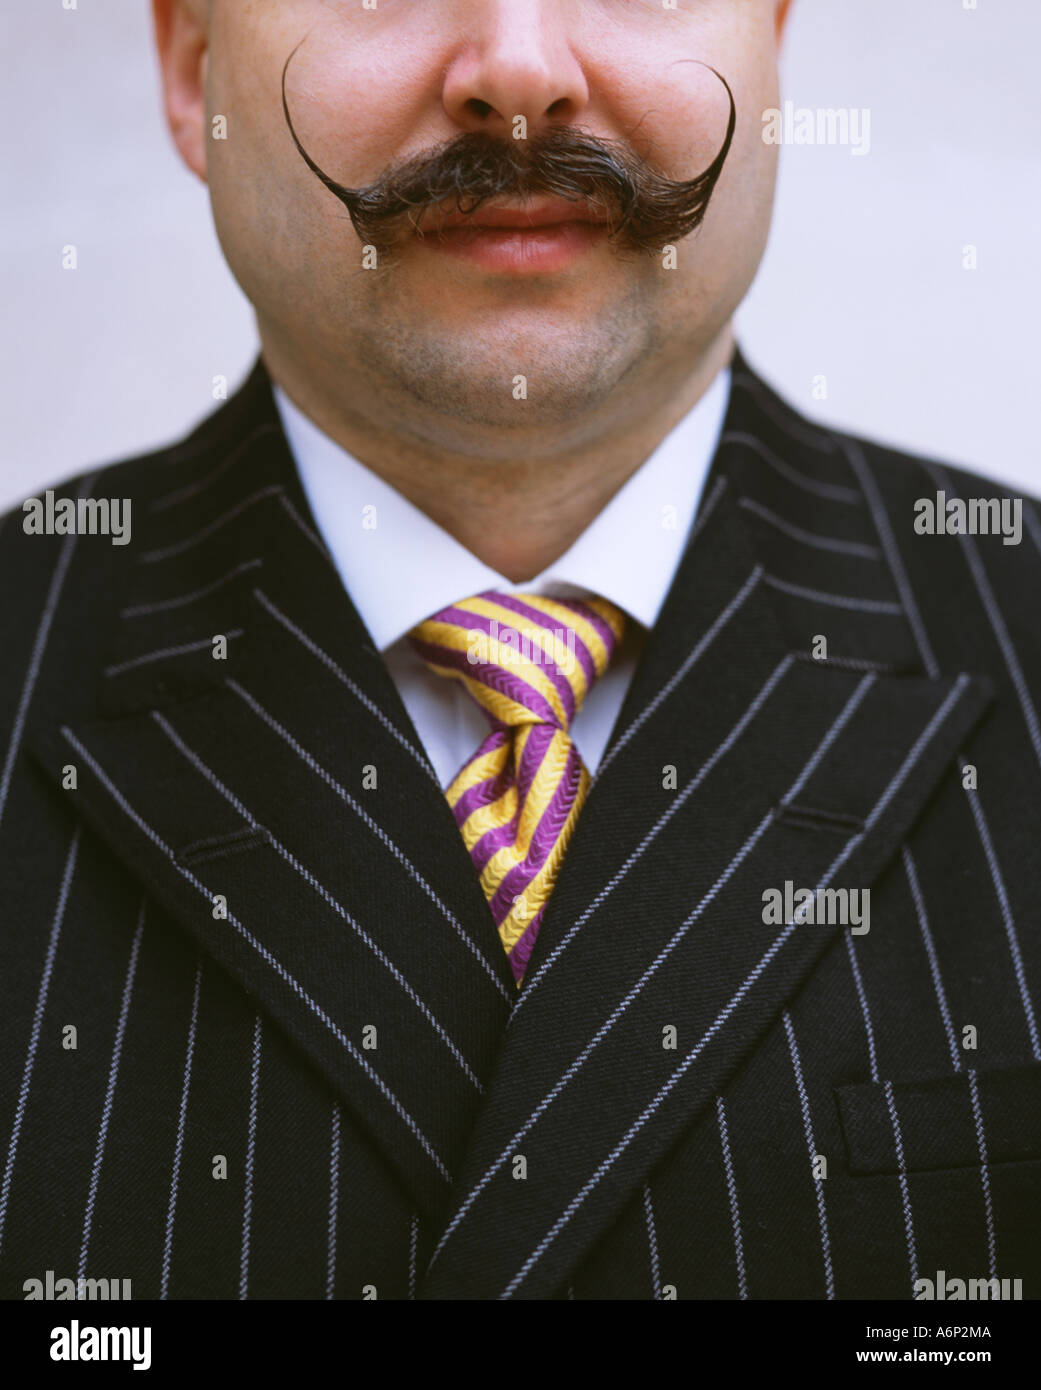 Close up of a man wearing a suit with a Salvador Dali moustache - Stock Image